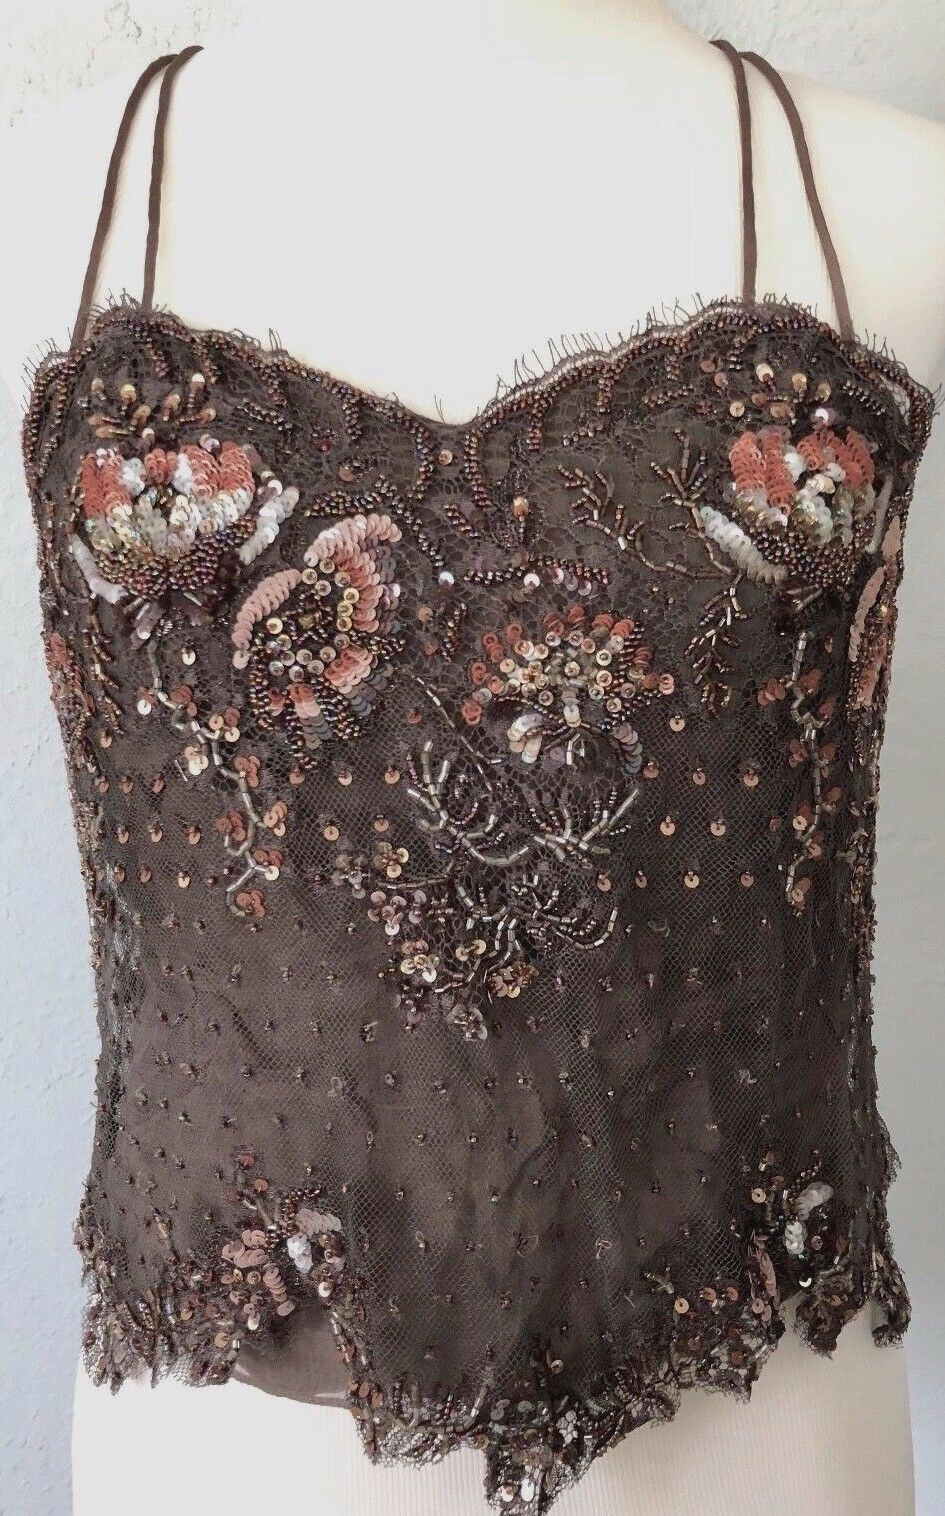 8 Lily Samii sequined beaded lined lace Silk Cami Tank top tunic dress USA